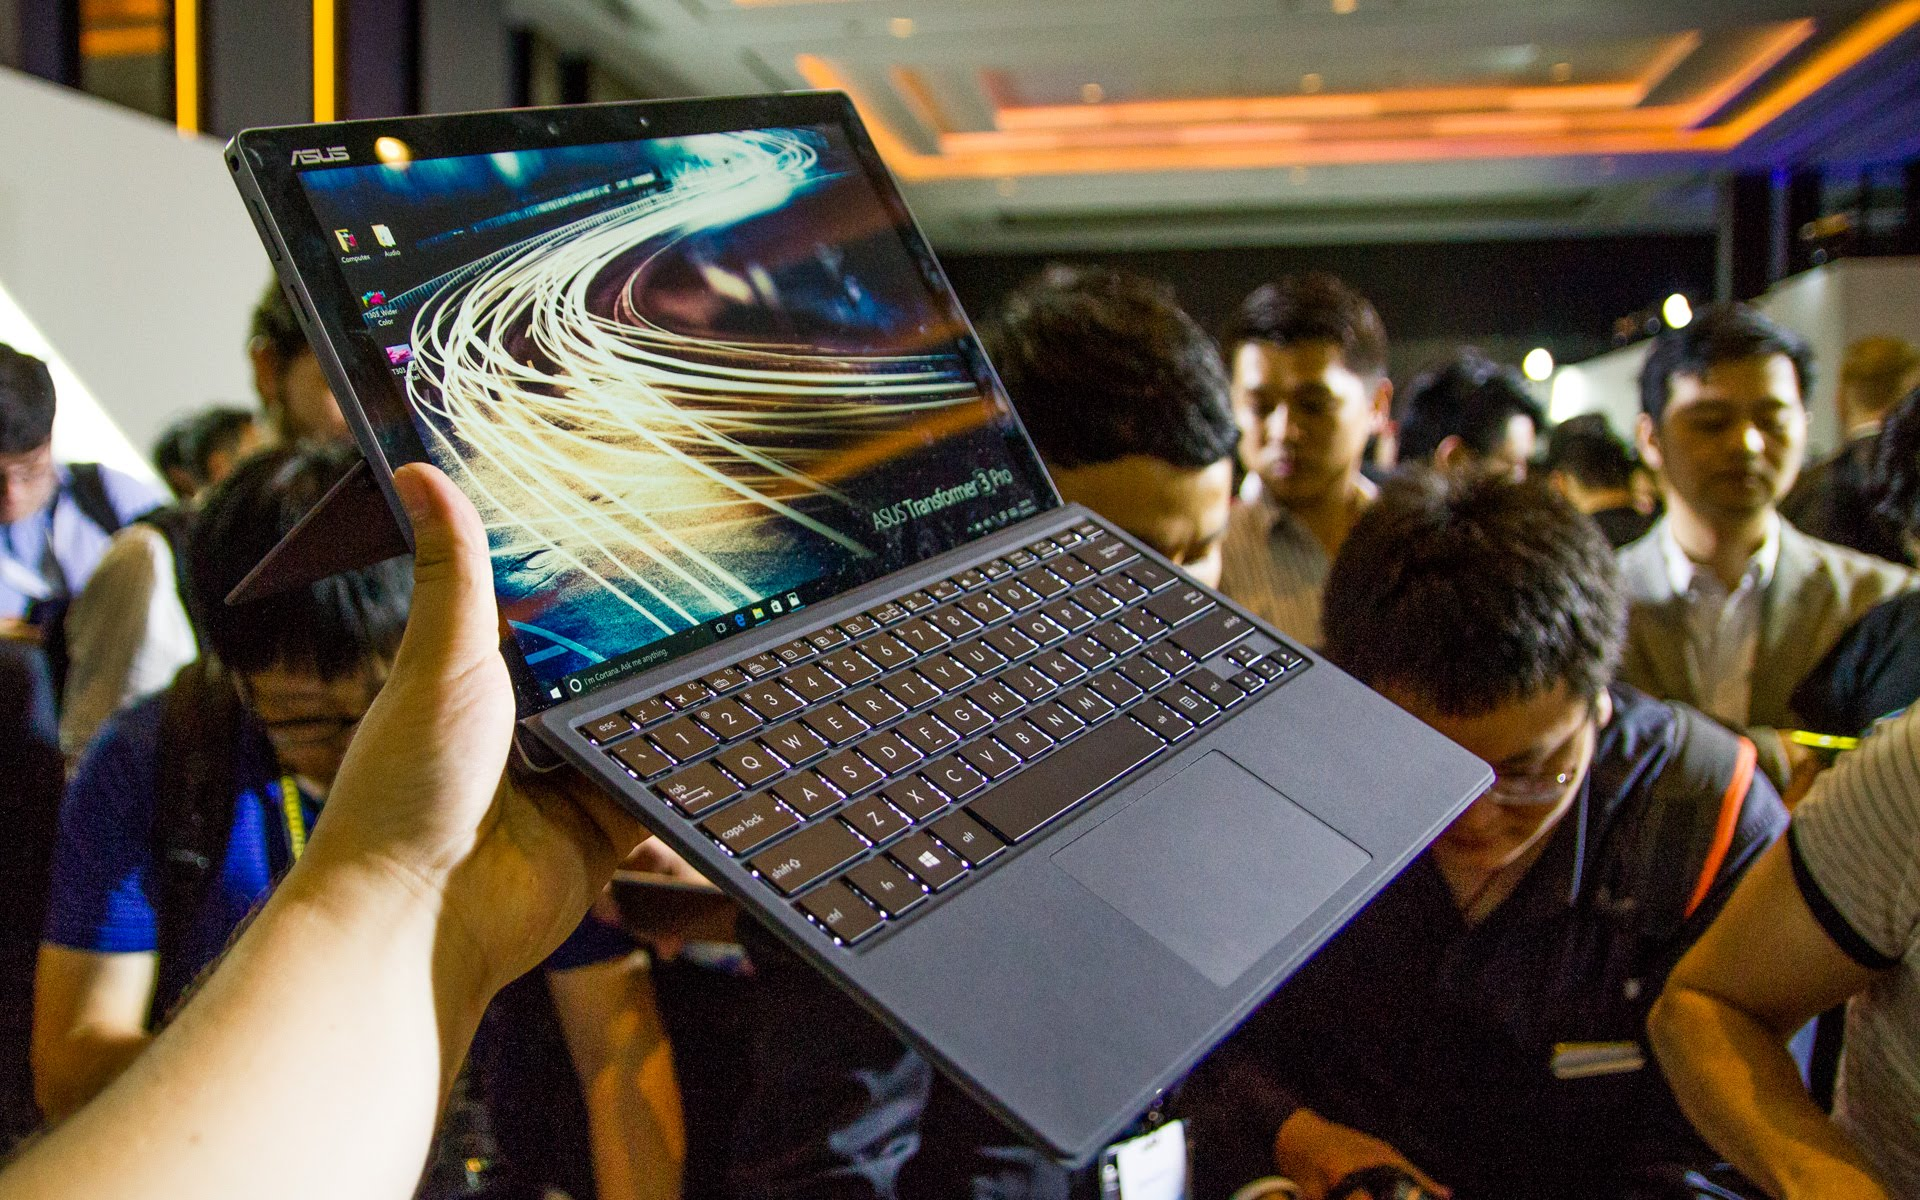 Photo of the Asus Transformer series returns to the center stage